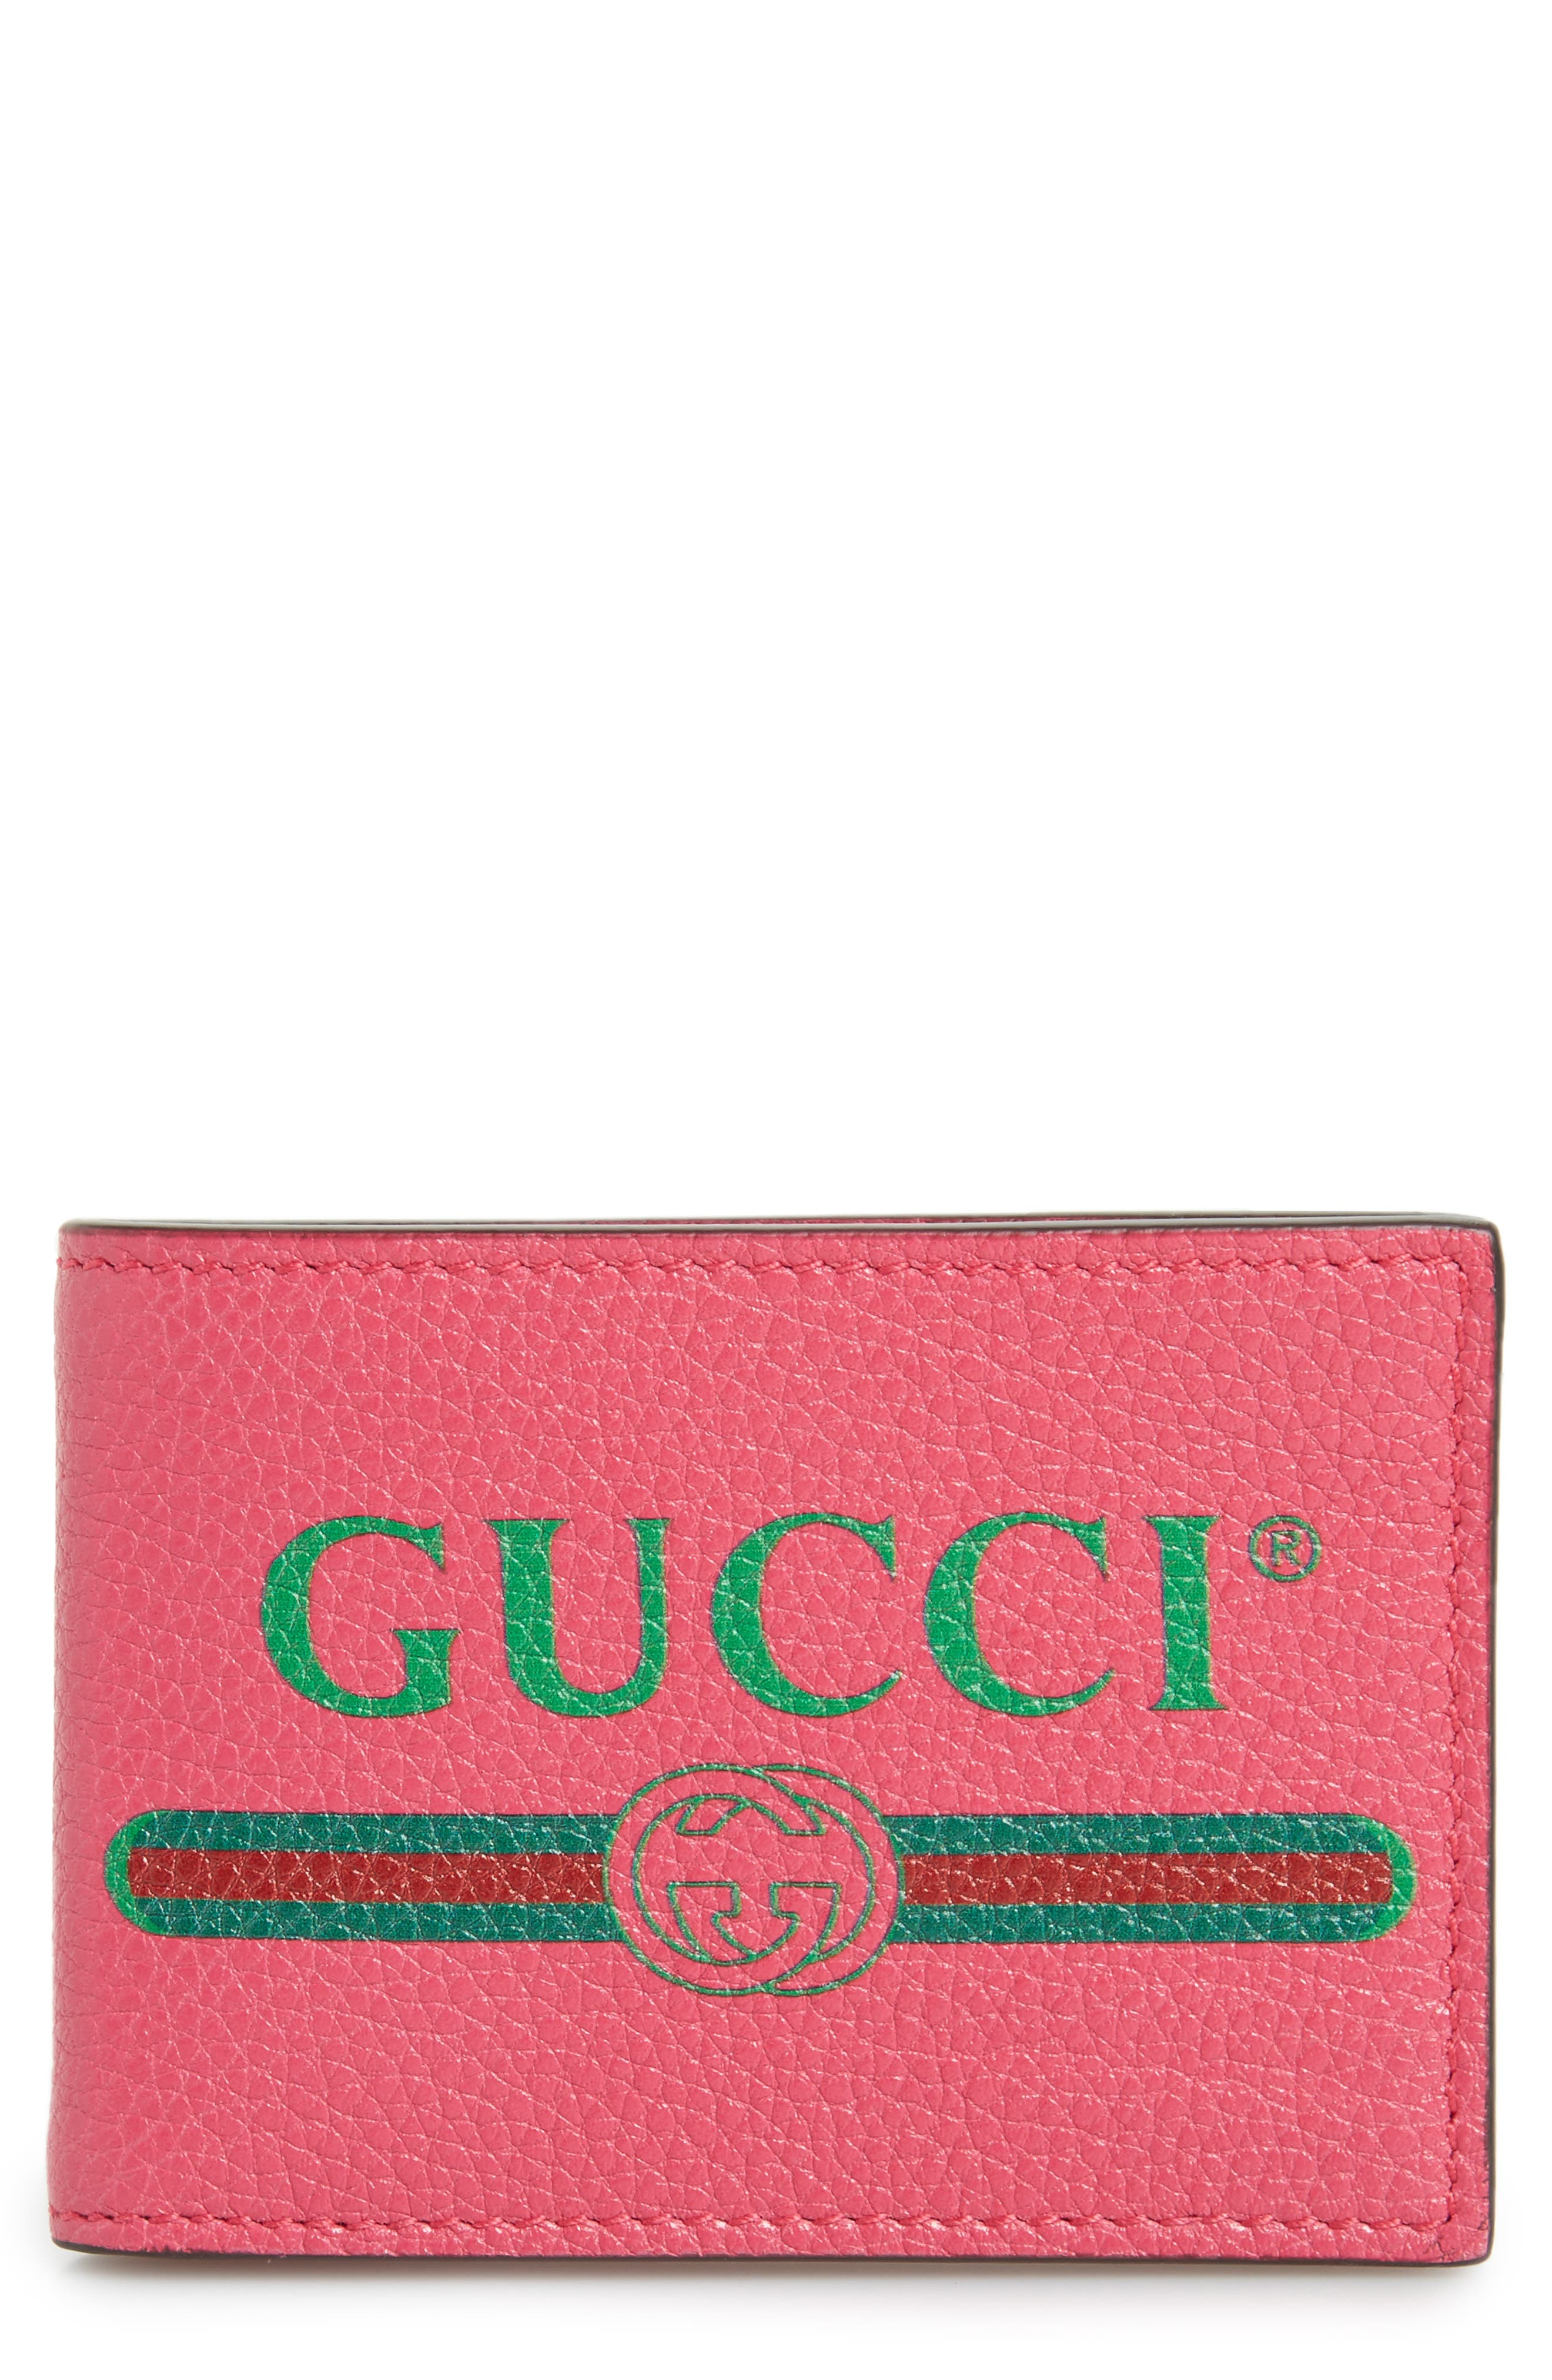 Alternate Image 1 Selected - Gucci Bifold Leather Wallet